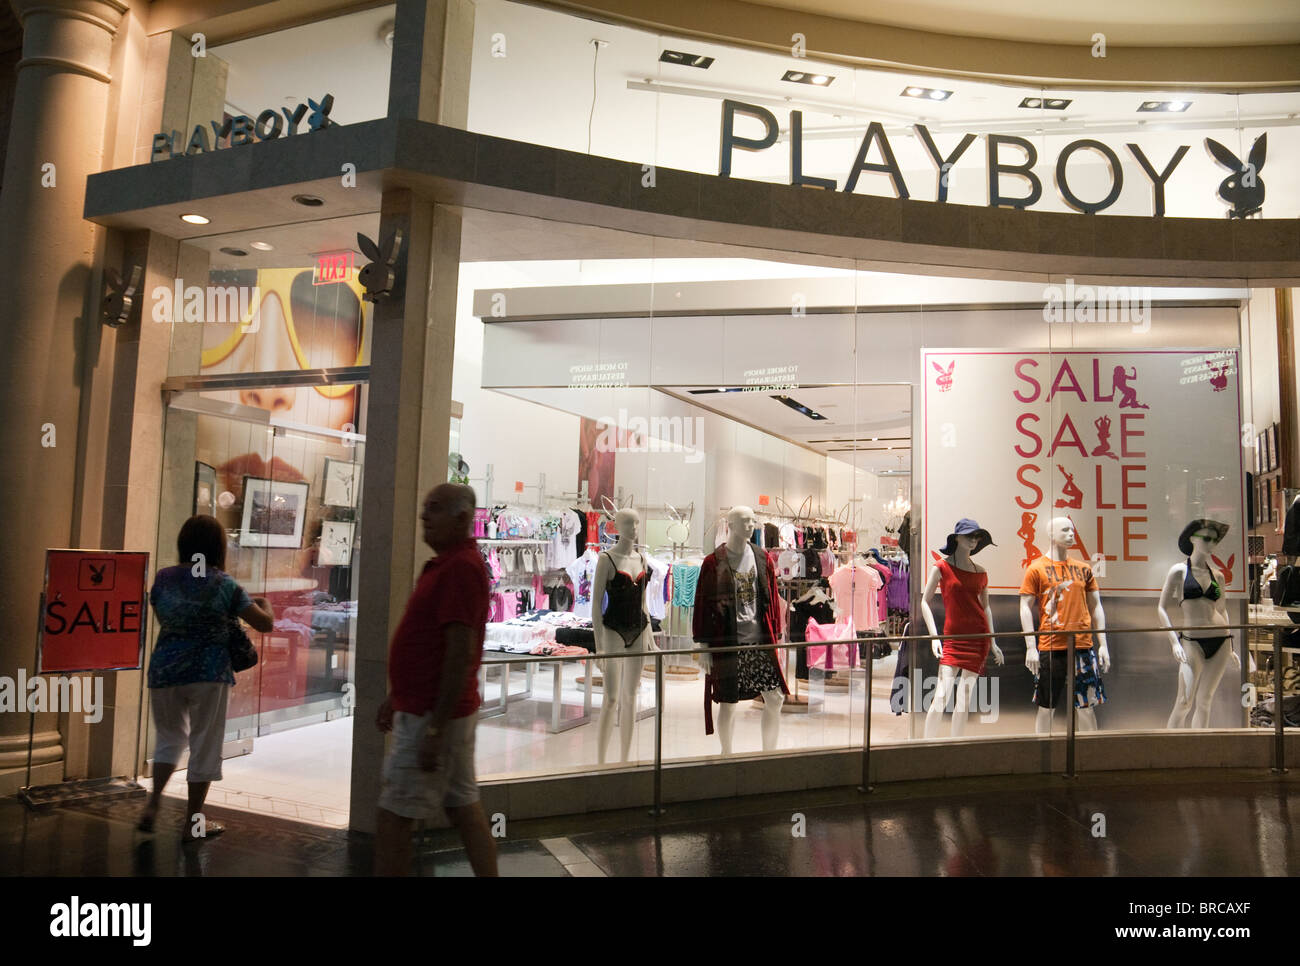 the playboy store the forum shops caesars palace hotel las vegas stock photo 31619463 alamy. Black Bedroom Furniture Sets. Home Design Ideas